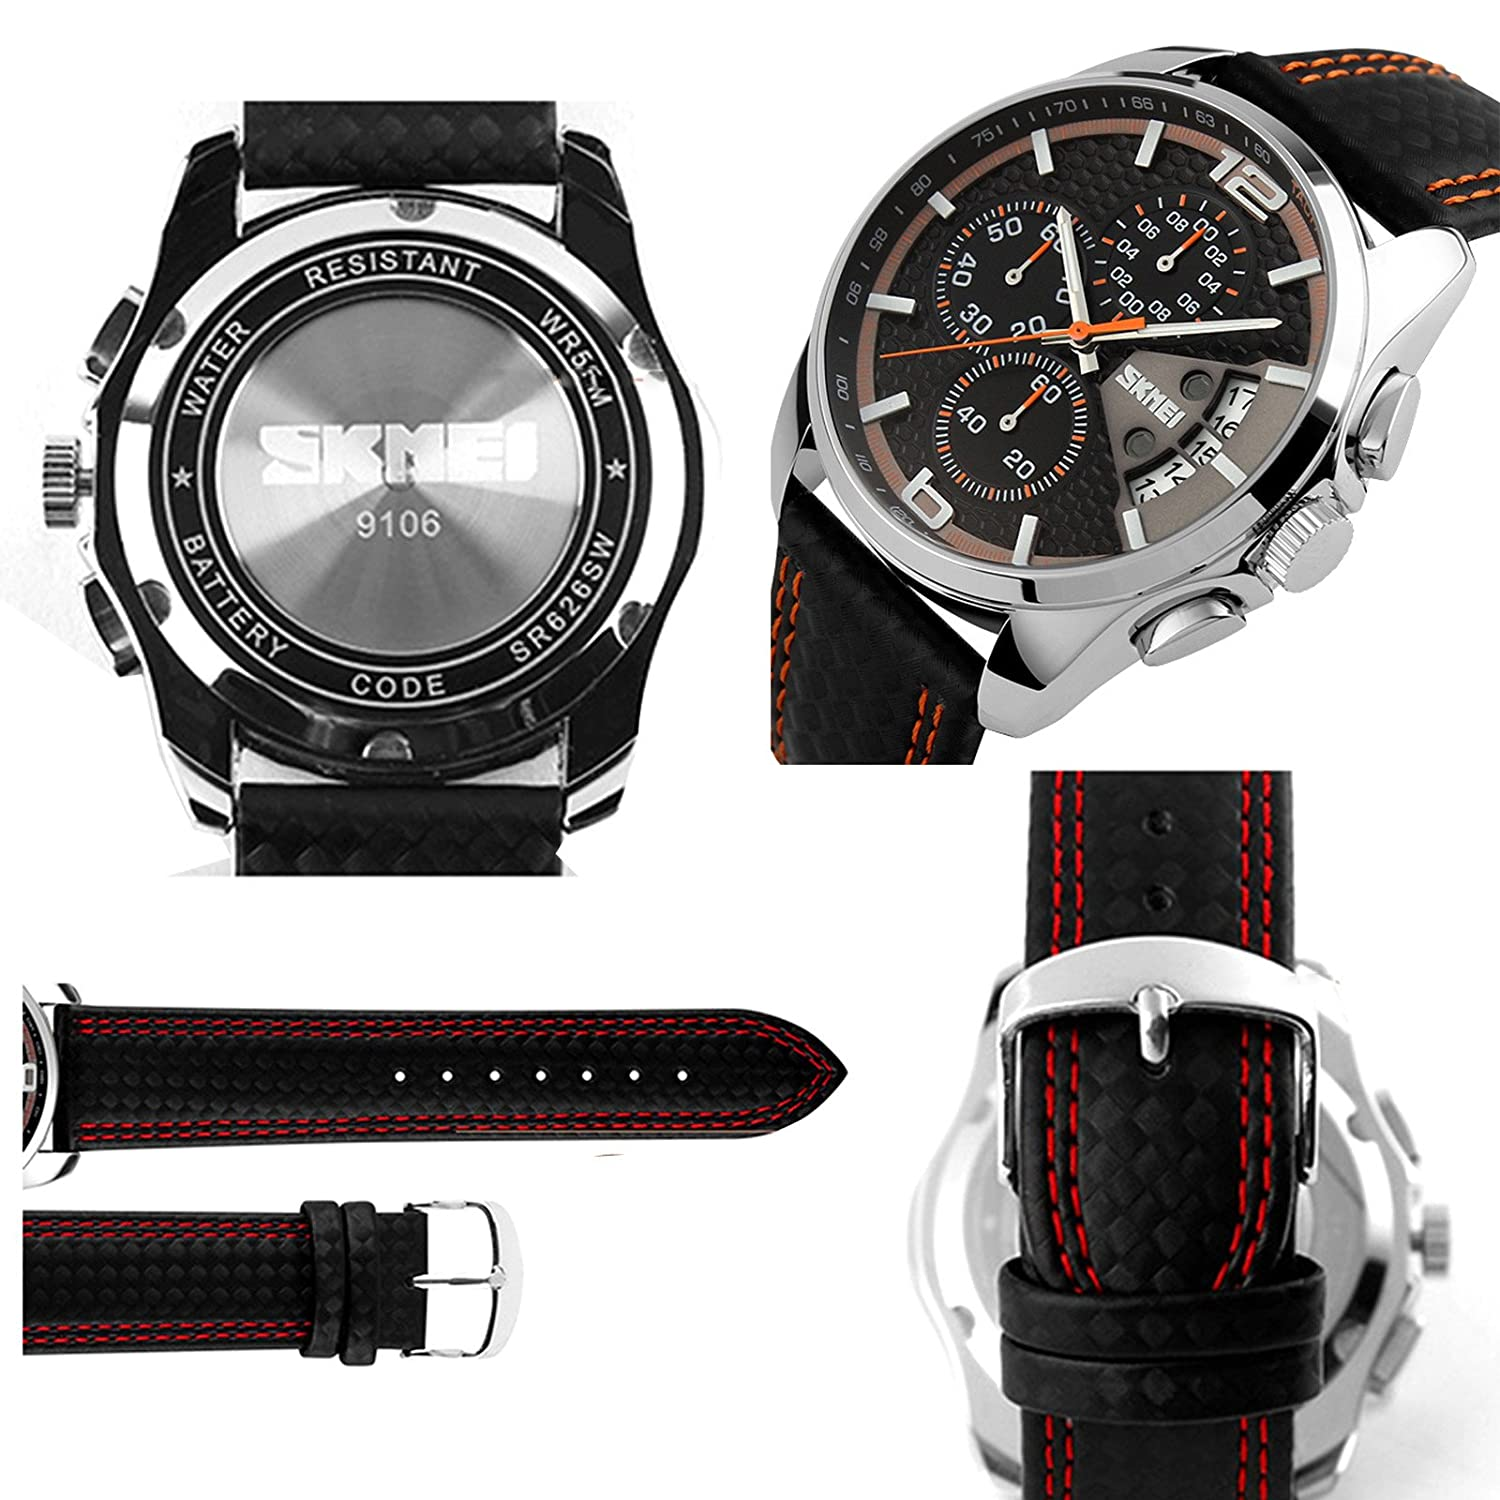 Amazon.com: Relojes de Hombre Sport LED Reloj Hombre Digital Military Water Resistant Watch Digital Men RE0026: Watches